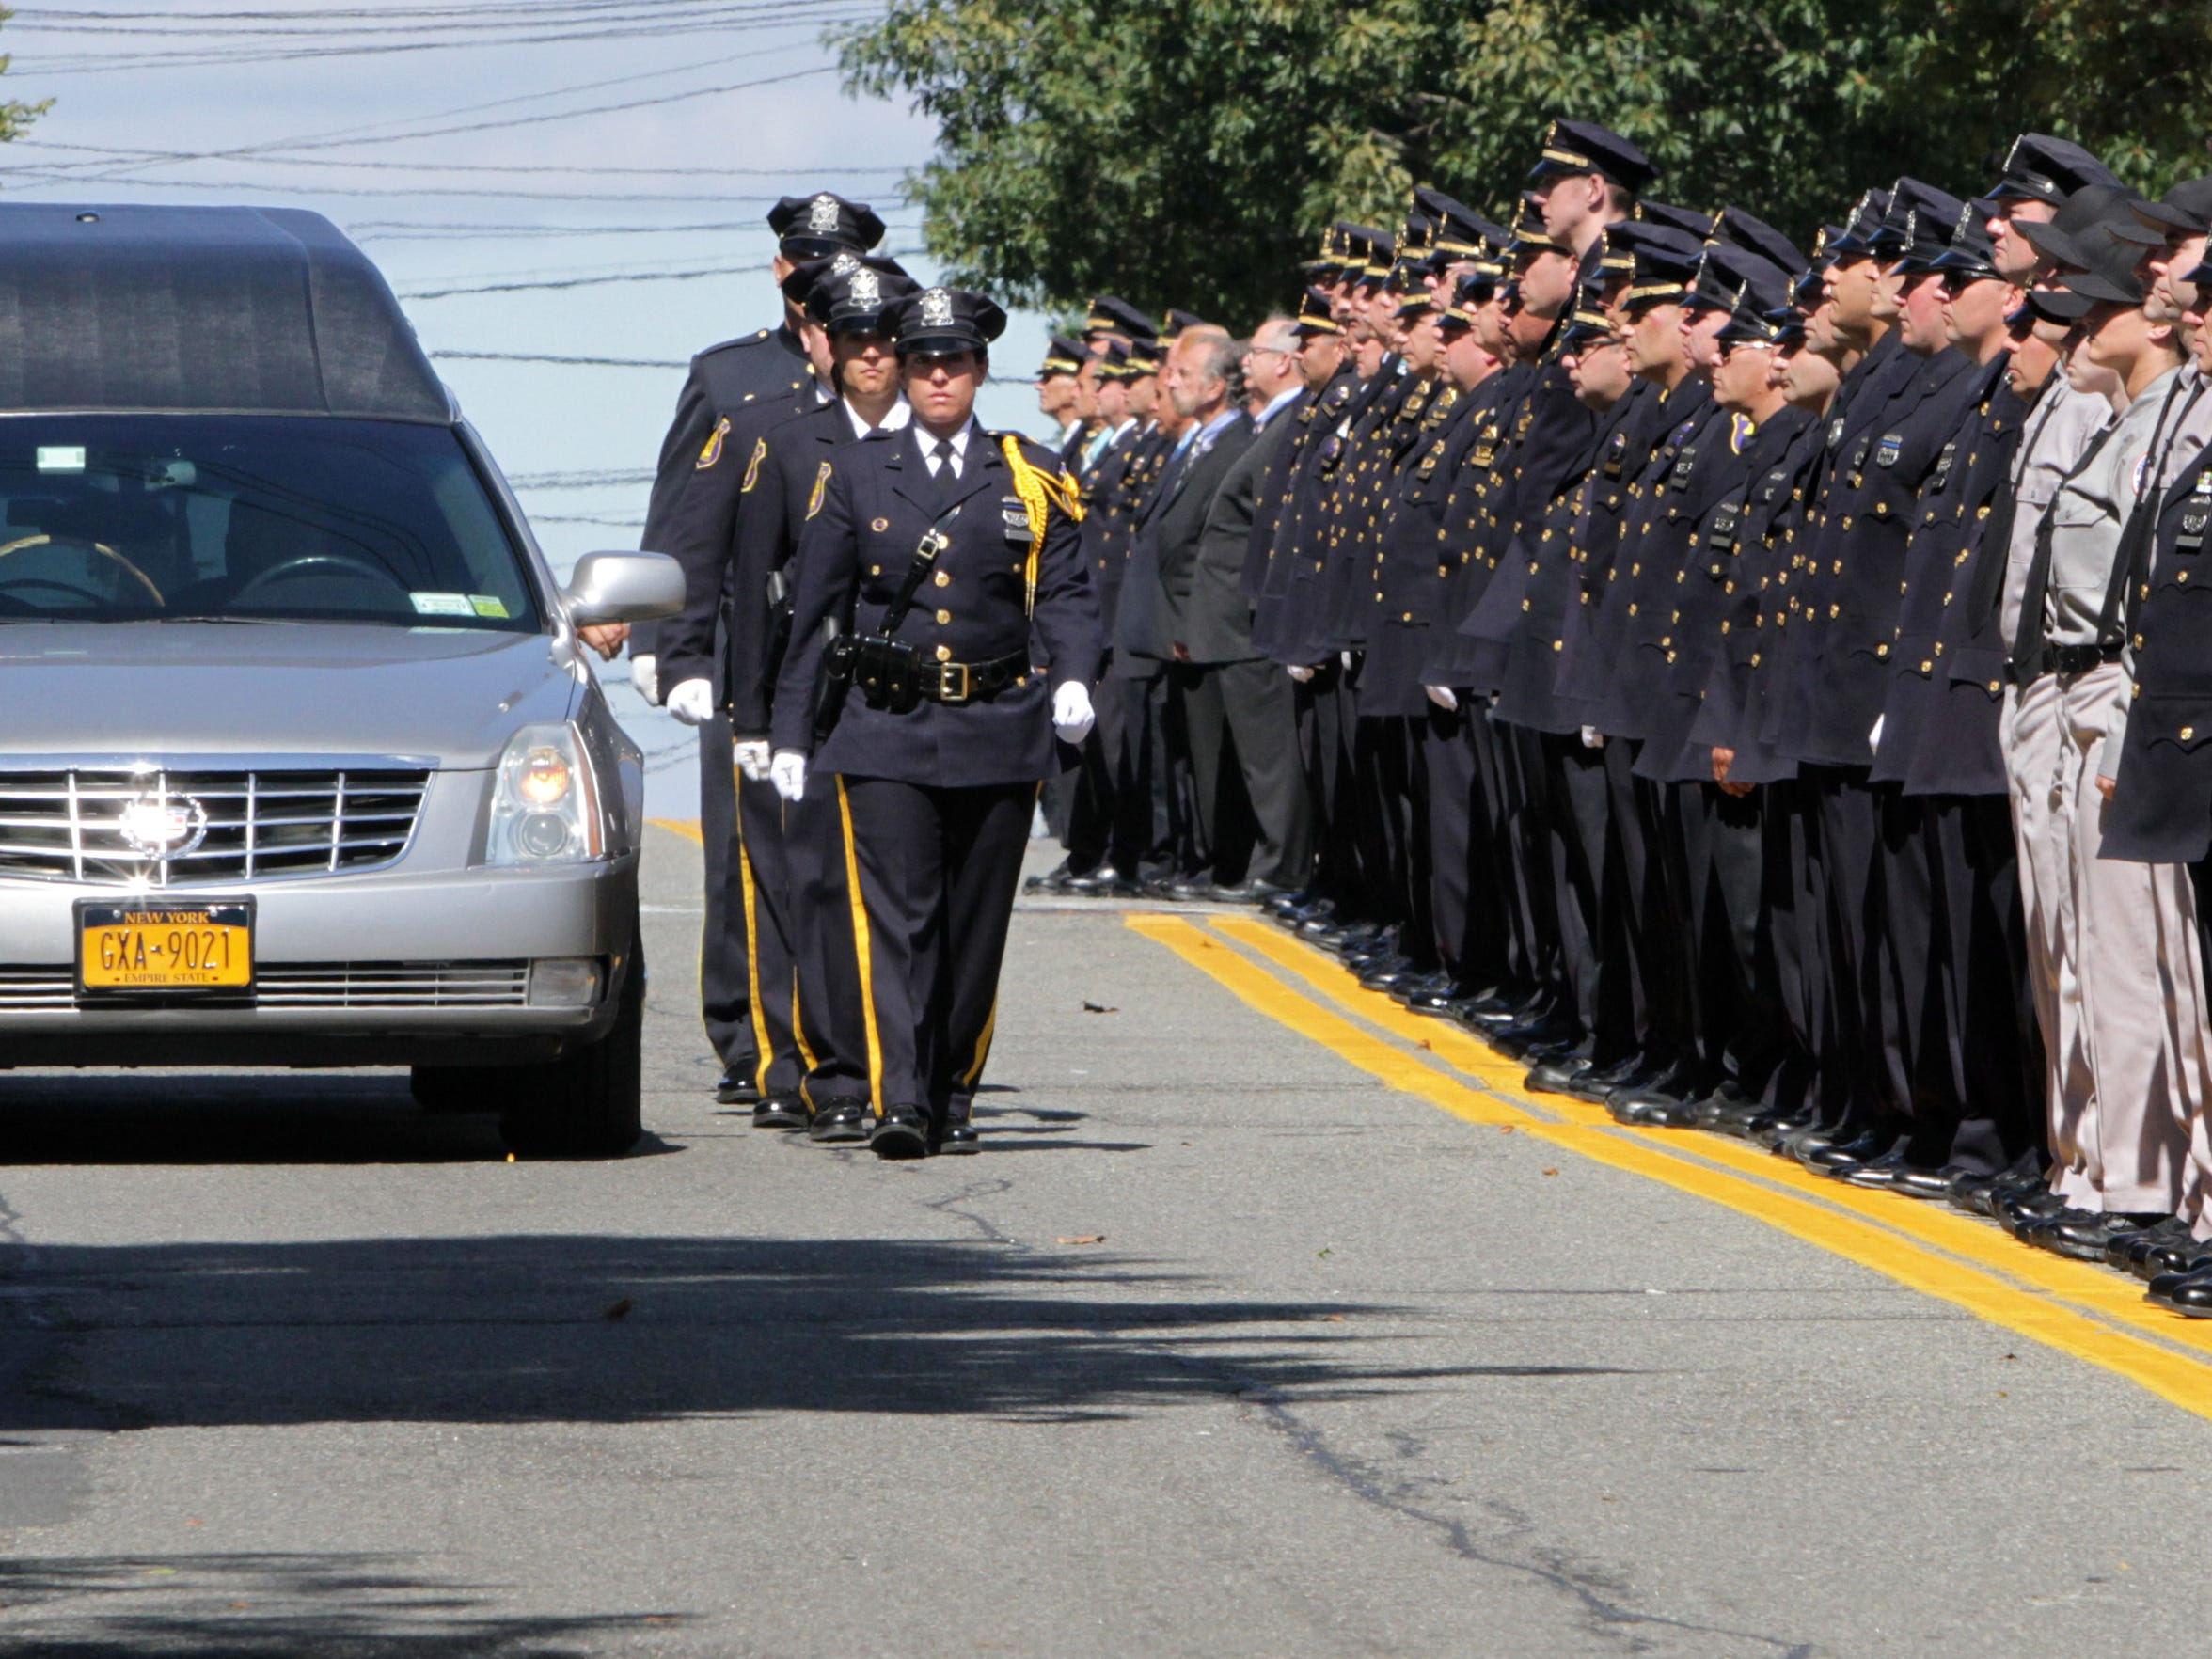 Police stand at attention as the hearse of Yonkers Police Lt.. Roy McLaughlin, 38, passes by after his September funeral. McLaughlin had helped rescue efforts at ground zero after 9/11 and his death, from cancer, was attributed to his work there.